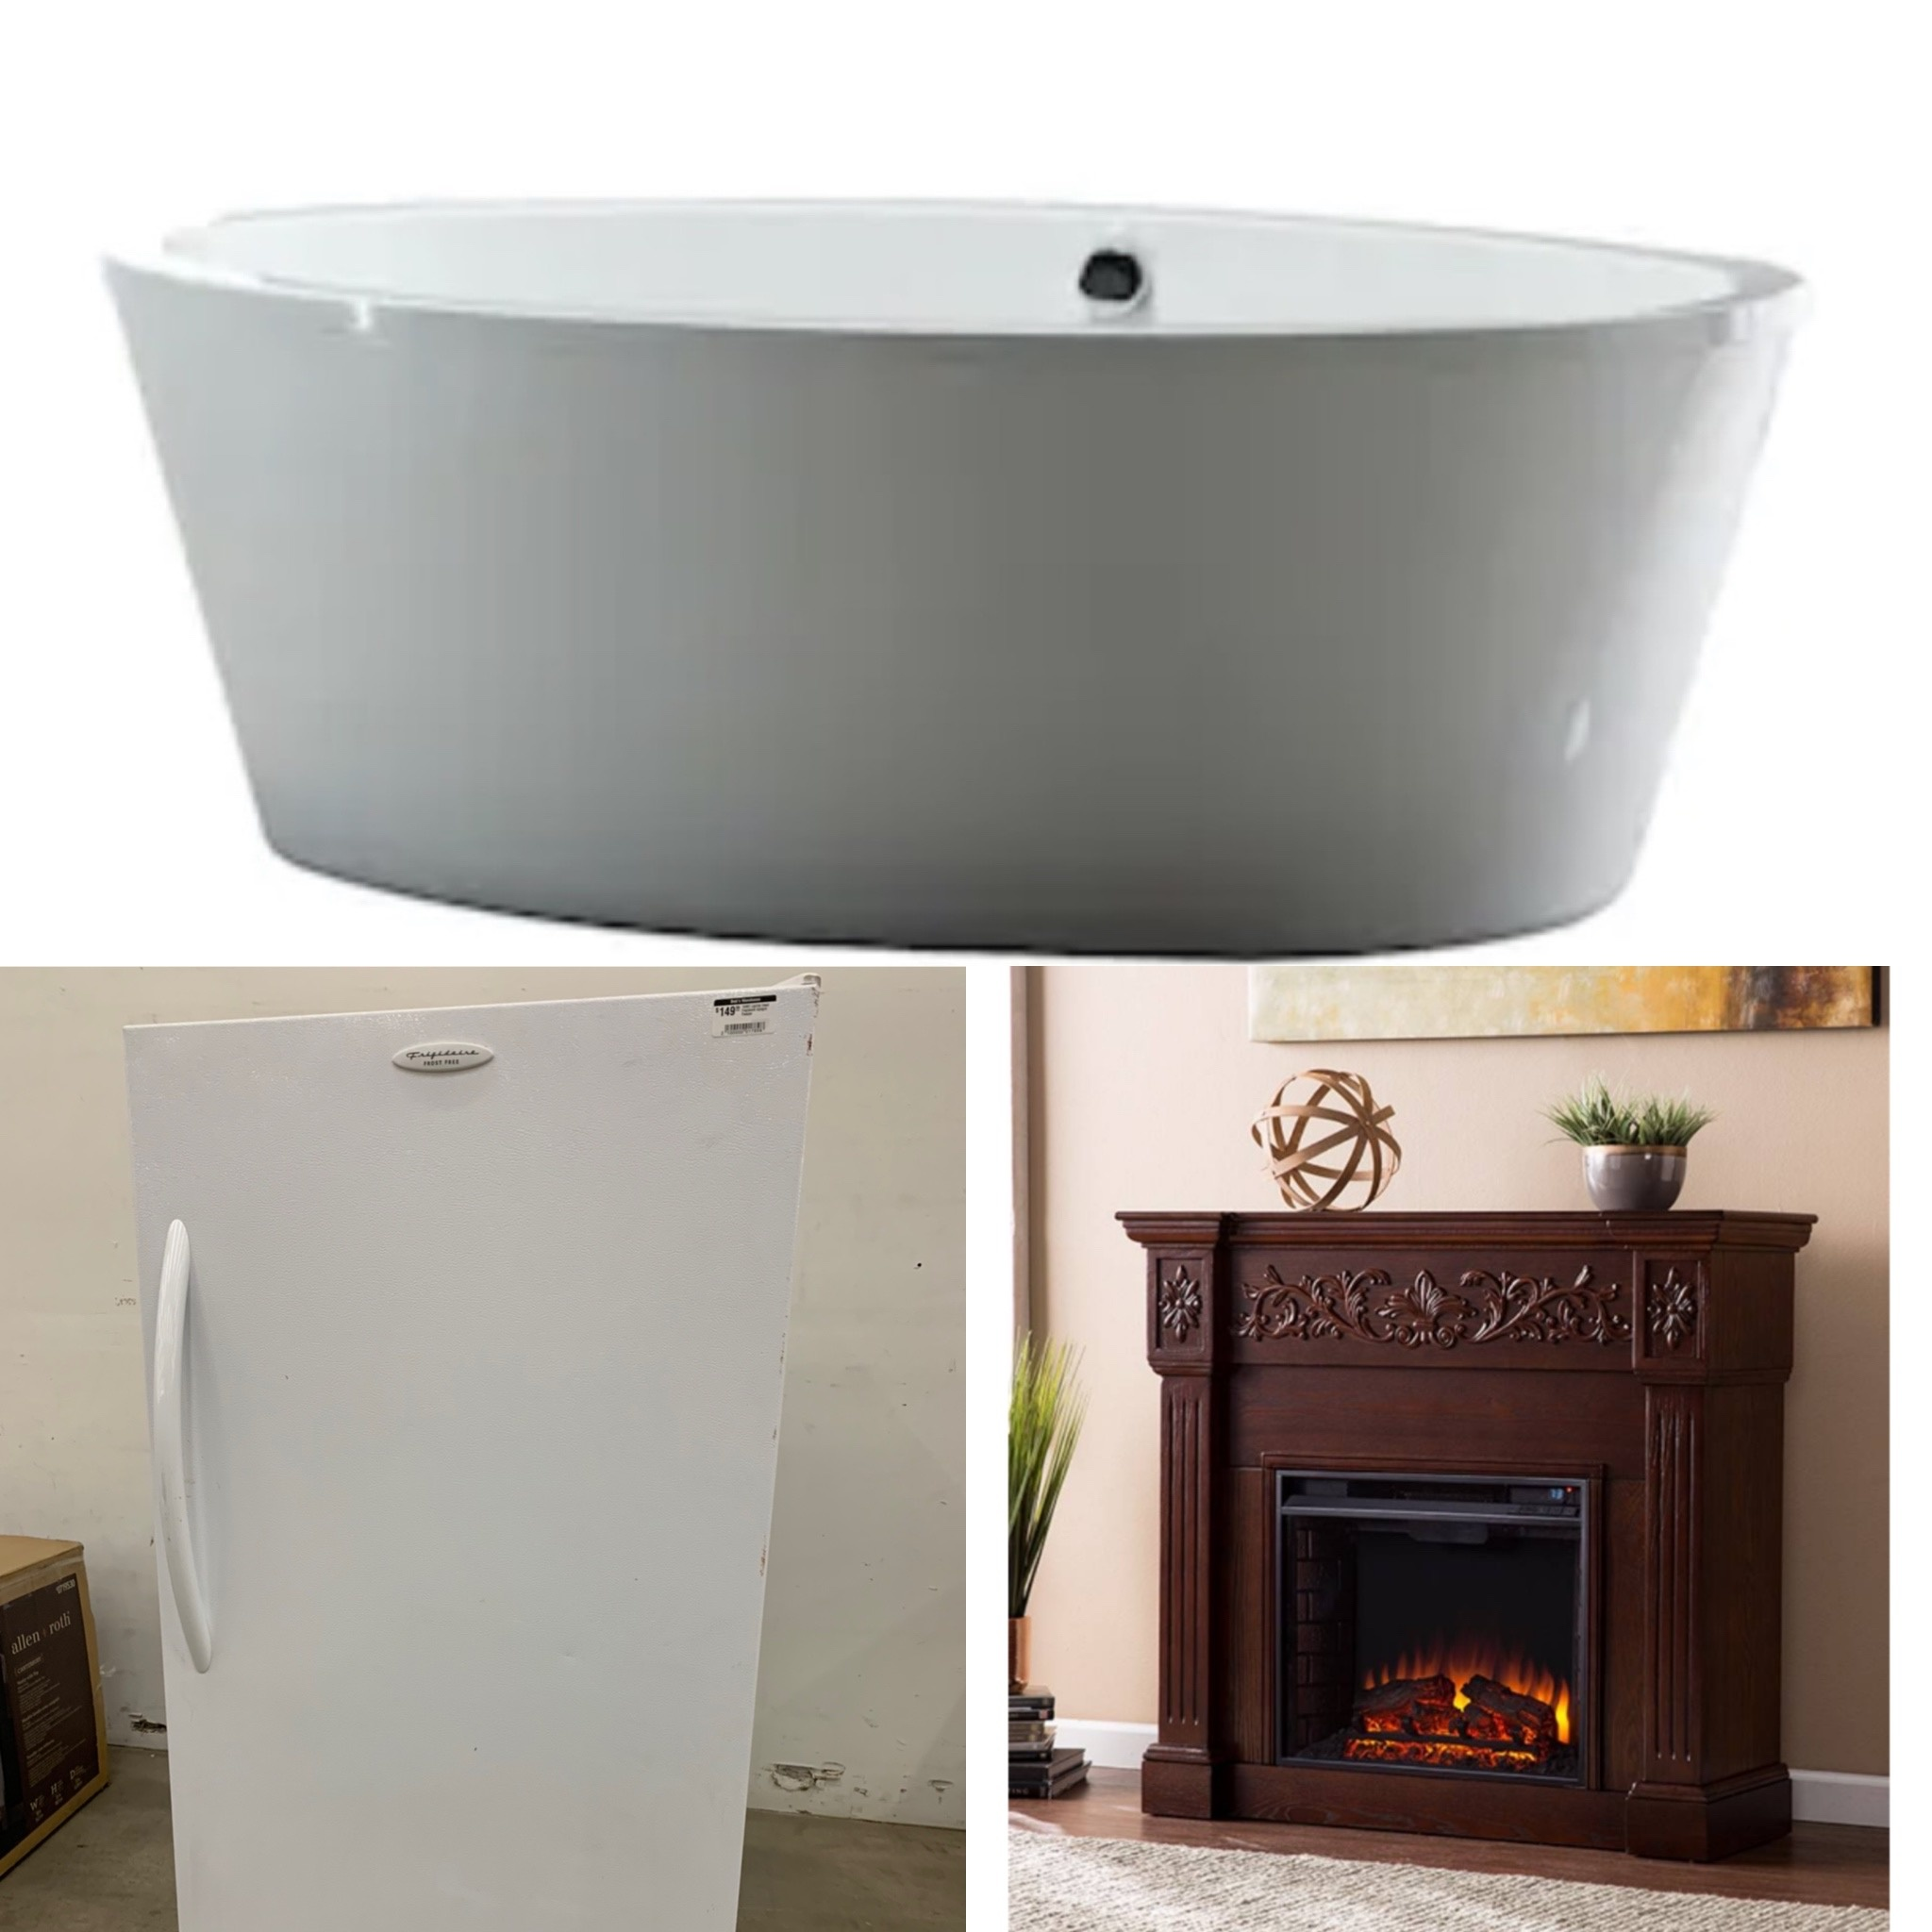 Freestanding Tubs Raise the Wow Factor in Your Bathroom!